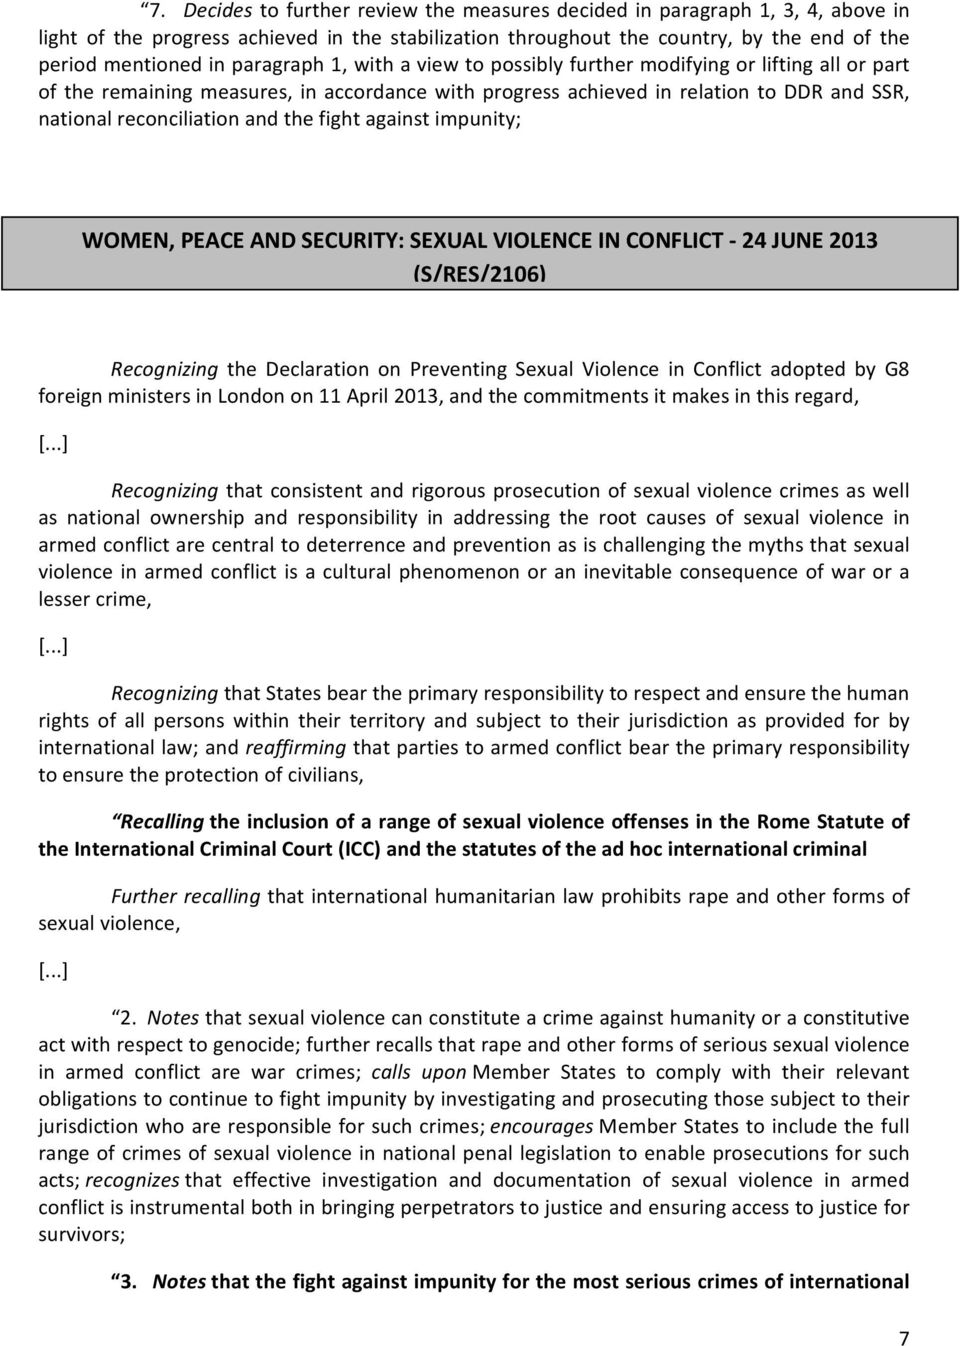 the fight against impunity; WOMEN, PEACE AND SECURITY: SEXUAL VIOLENCE IN CONFLICT 24 JUNE 2013 (S/RES/2106) Recognizing the Declaration on Preventing Sexual Violence in Conflict adopted by G8